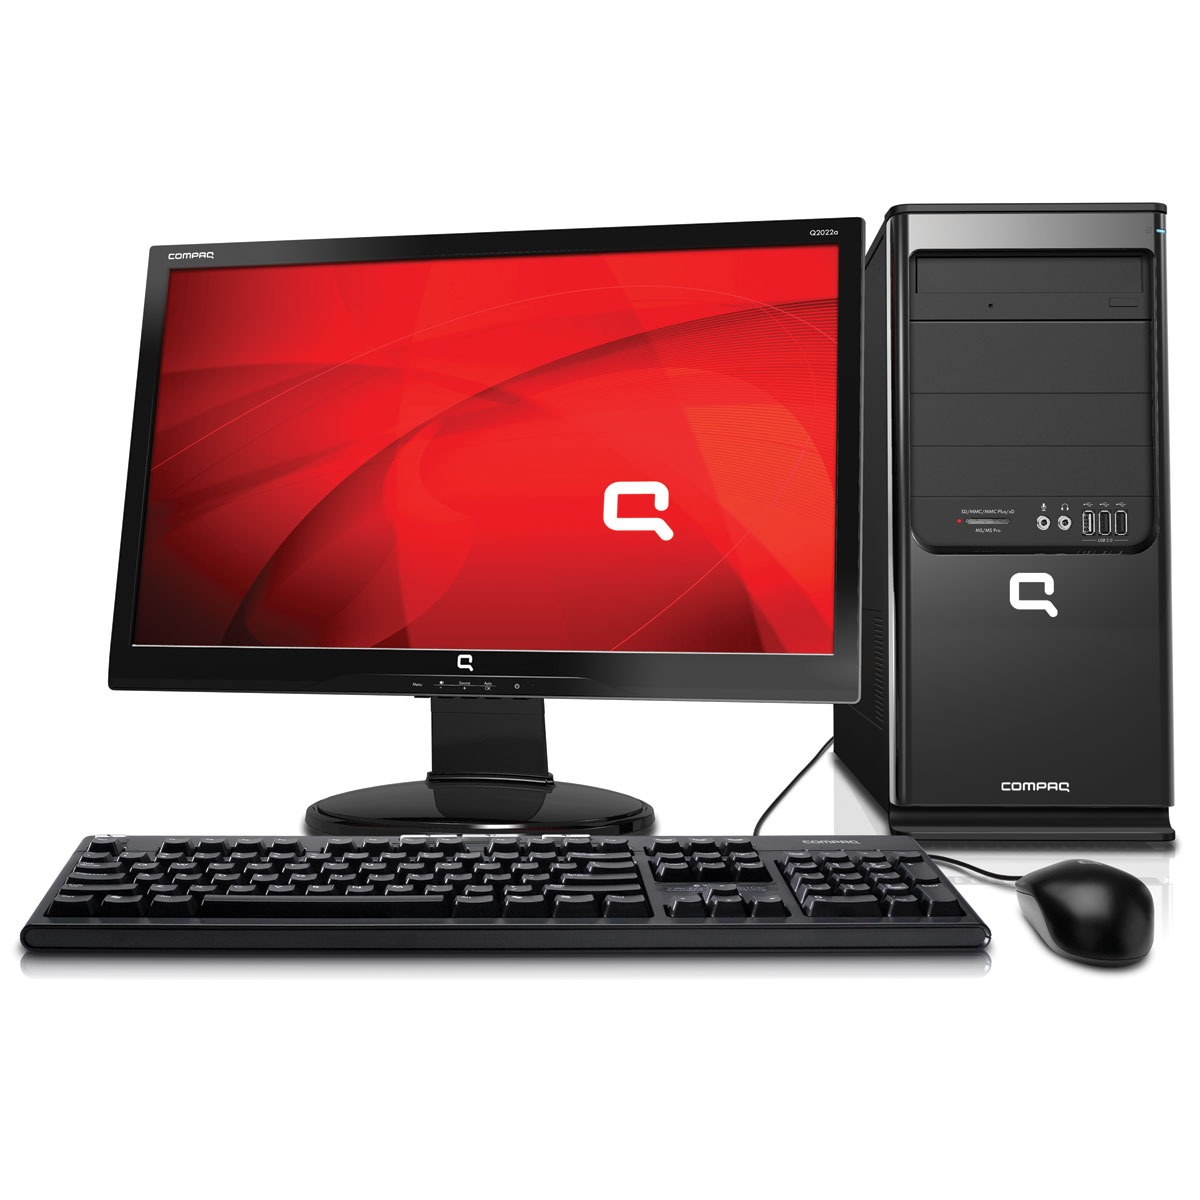 hp compaq sg3 215fr m pc de bureau hp sur ldlc. Black Bedroom Furniture Sets. Home Design Ideas